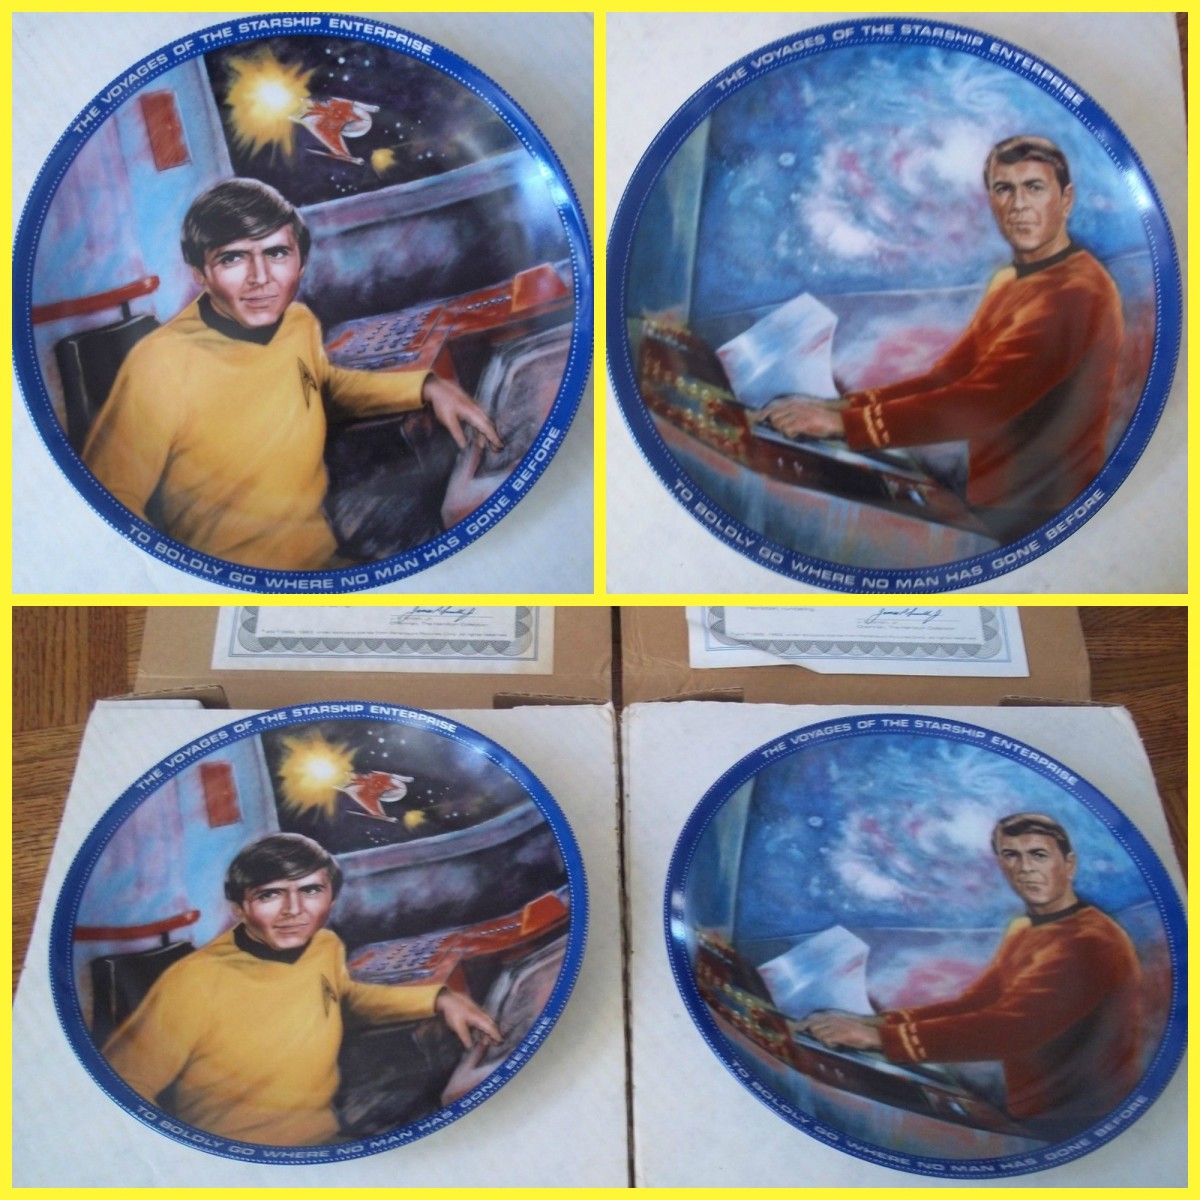 These tow Plates have printing on top of the plate rim THE VOYAGES OF THE STARSHIP ENTERPRISE,  and the bottom part of the rim states: TO BOLDLY GO WHERE NO MAN HAS GONE BEFORE, and they both come with papers of authenticity, and are hand numbered on